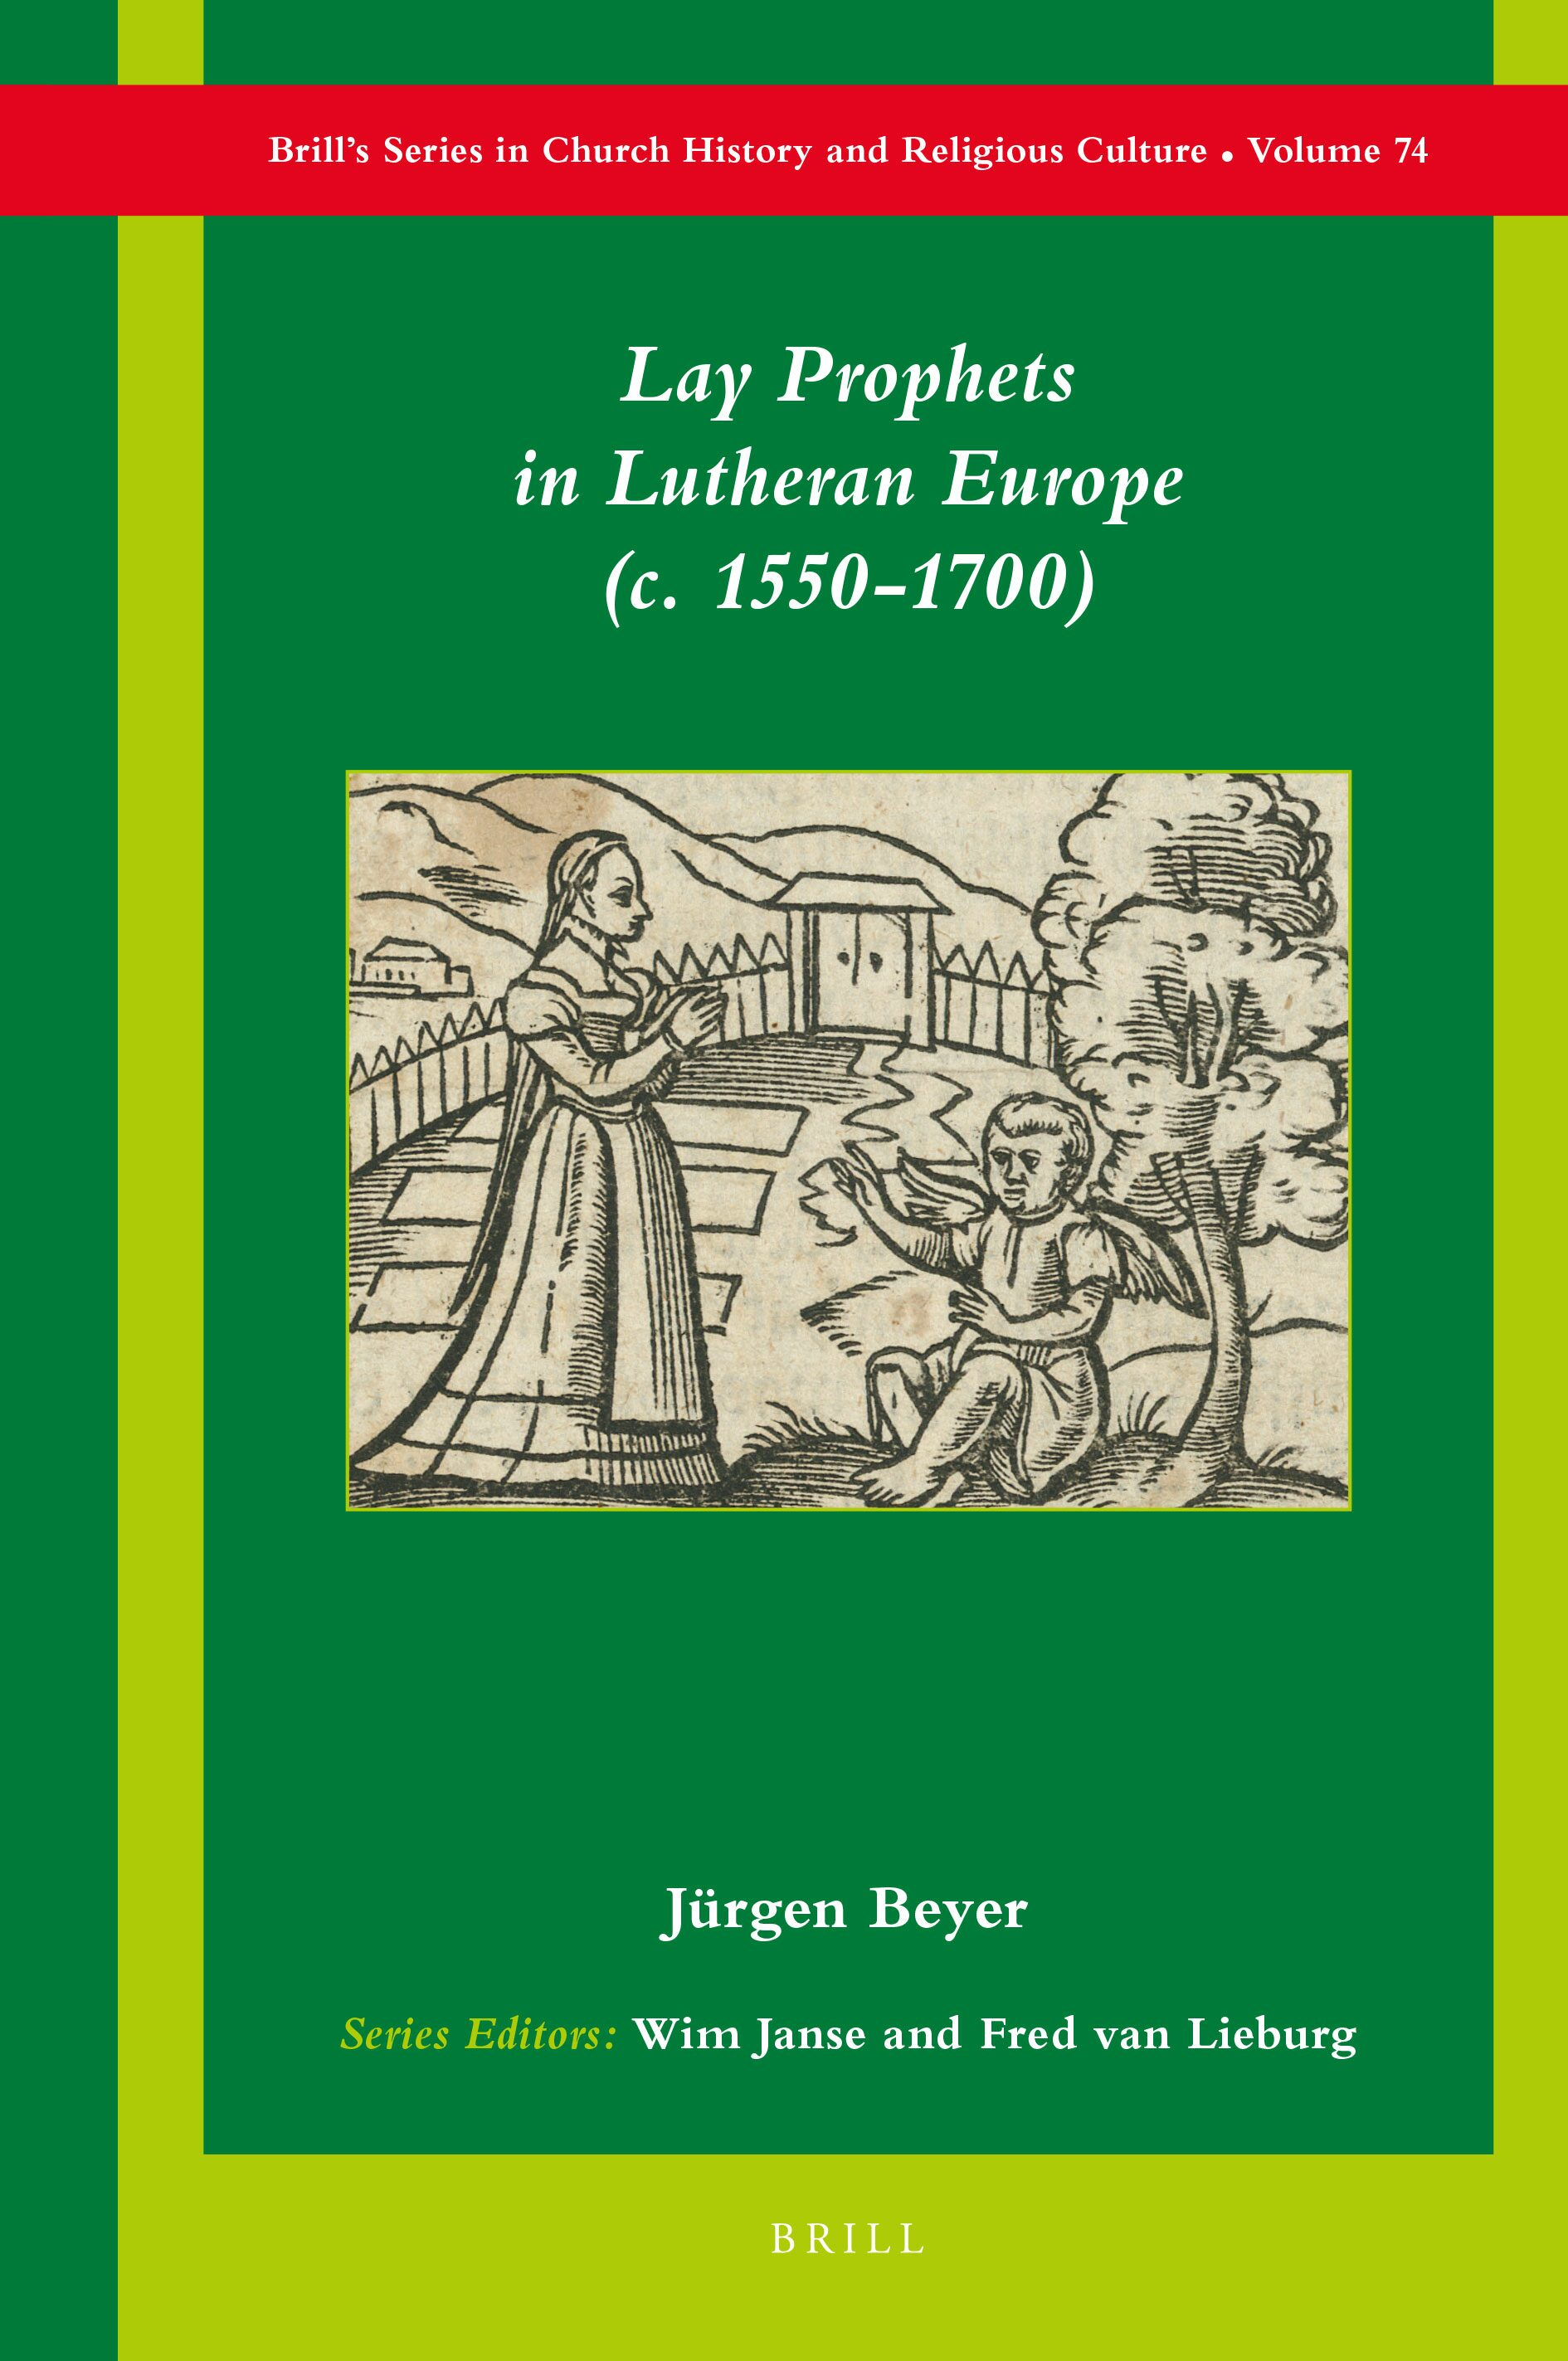 Conceptions Of Holiness In Early Modern Lutheranism1 In Lay